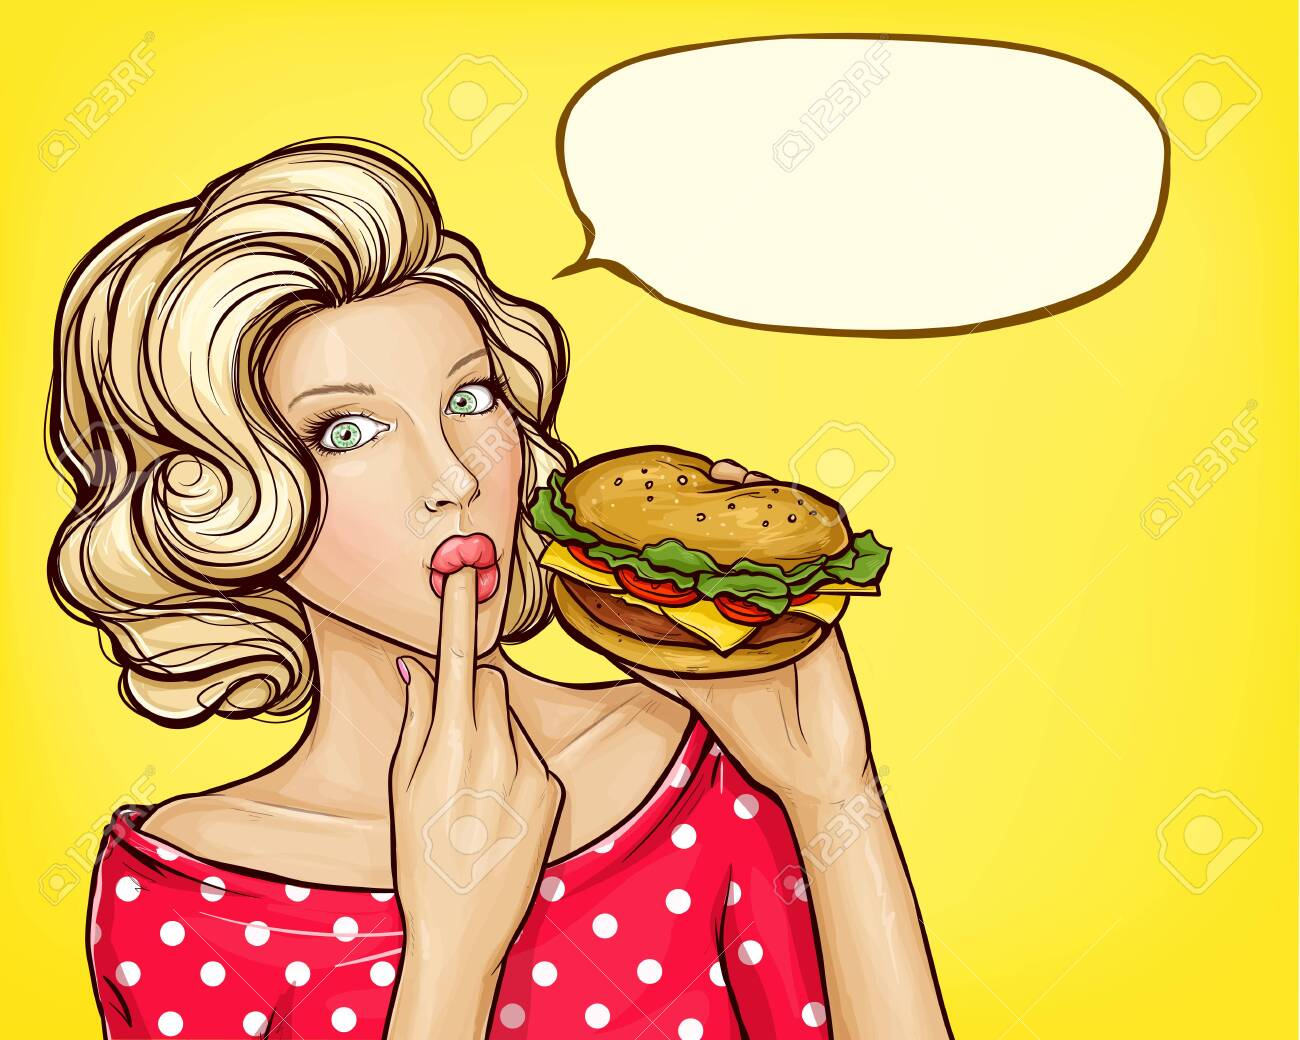 pop art illustration of girl with burger licking finger, isolated on yellow background. Beautiful young woman holding in hand tasty huge hamburger. Fast food advertising concept - 146918532